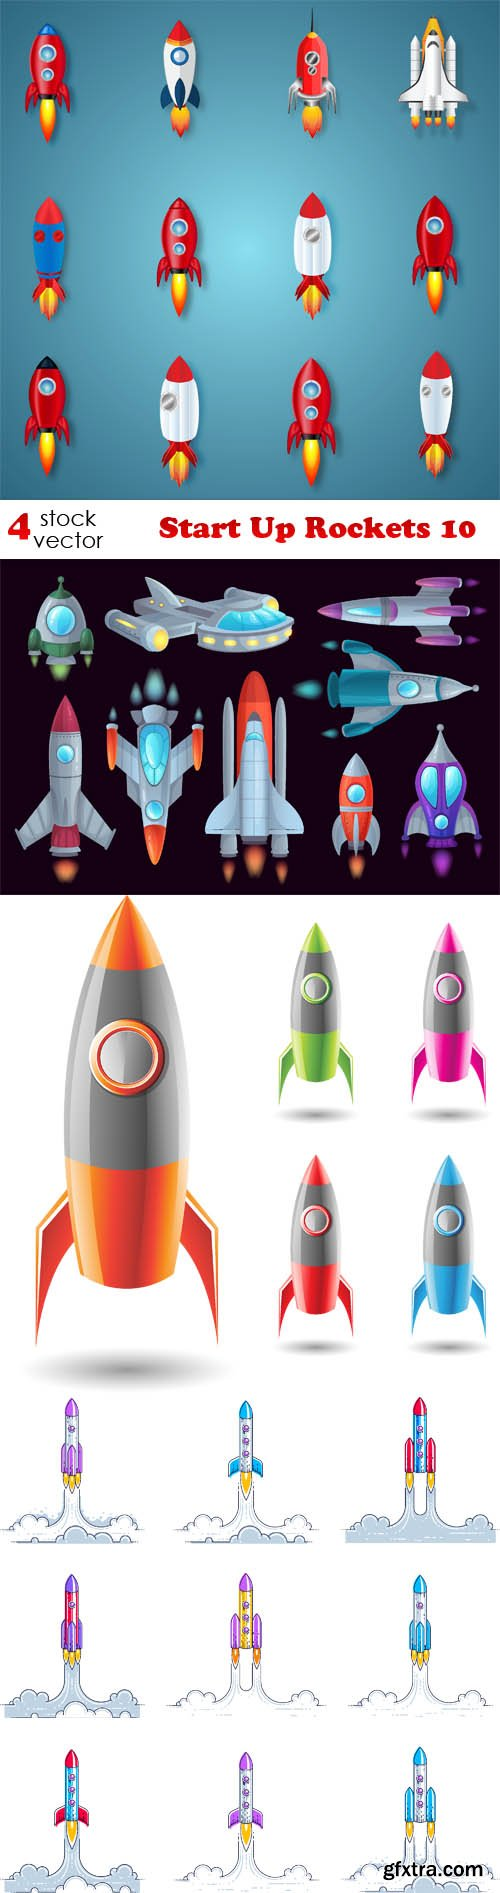 Vectors - Start Up Rockets 10